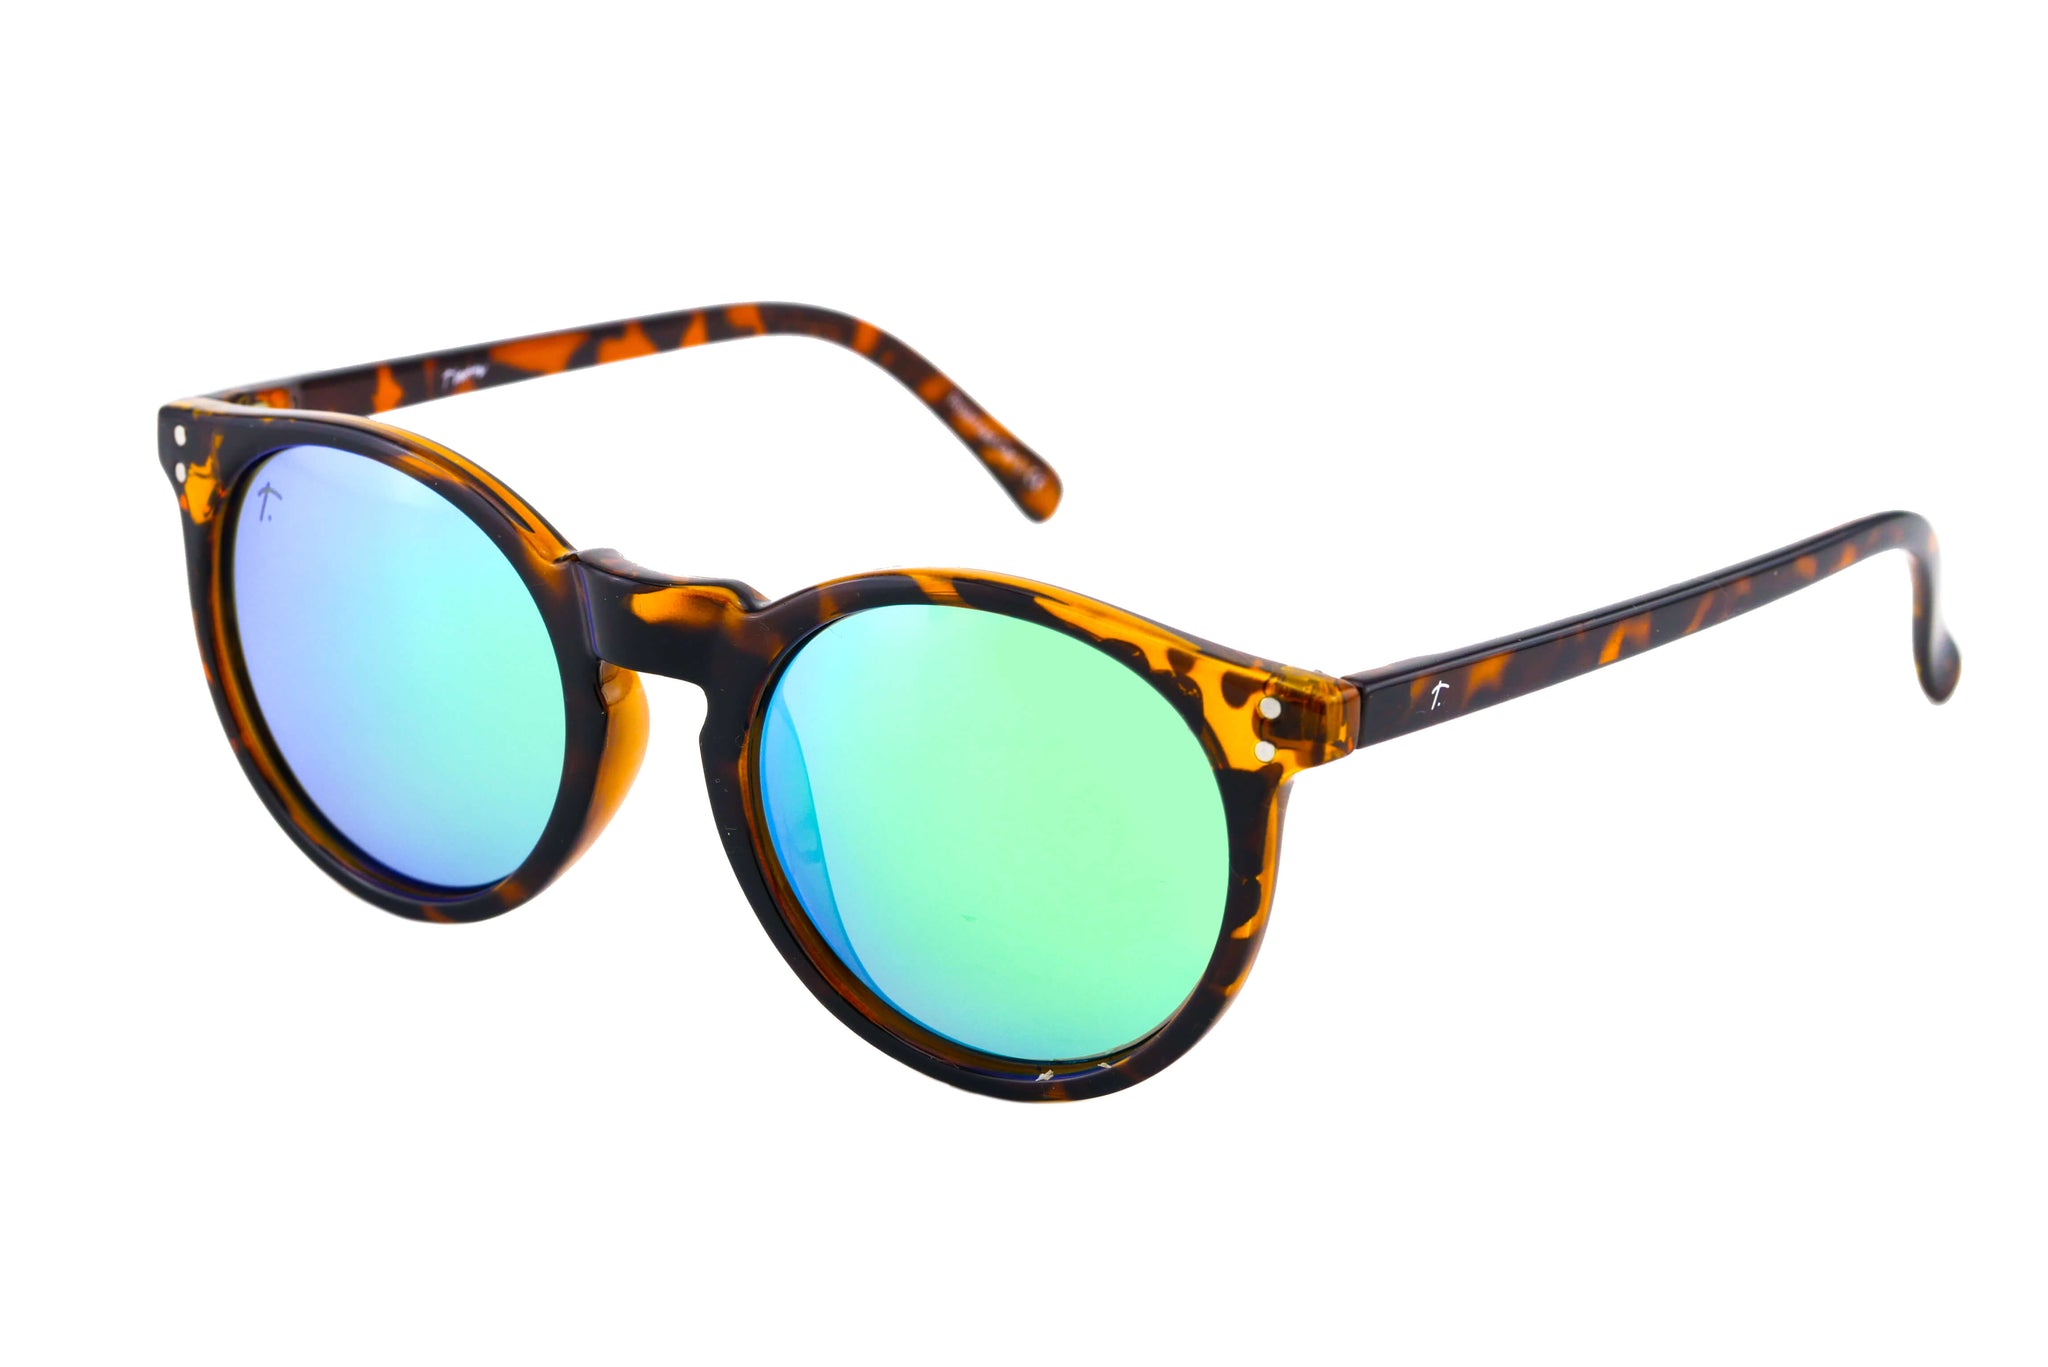 af1cd45caa ... round sunglasses. tortoise shell sunglasses. green lens sunglasses.  sunglasses for women ...